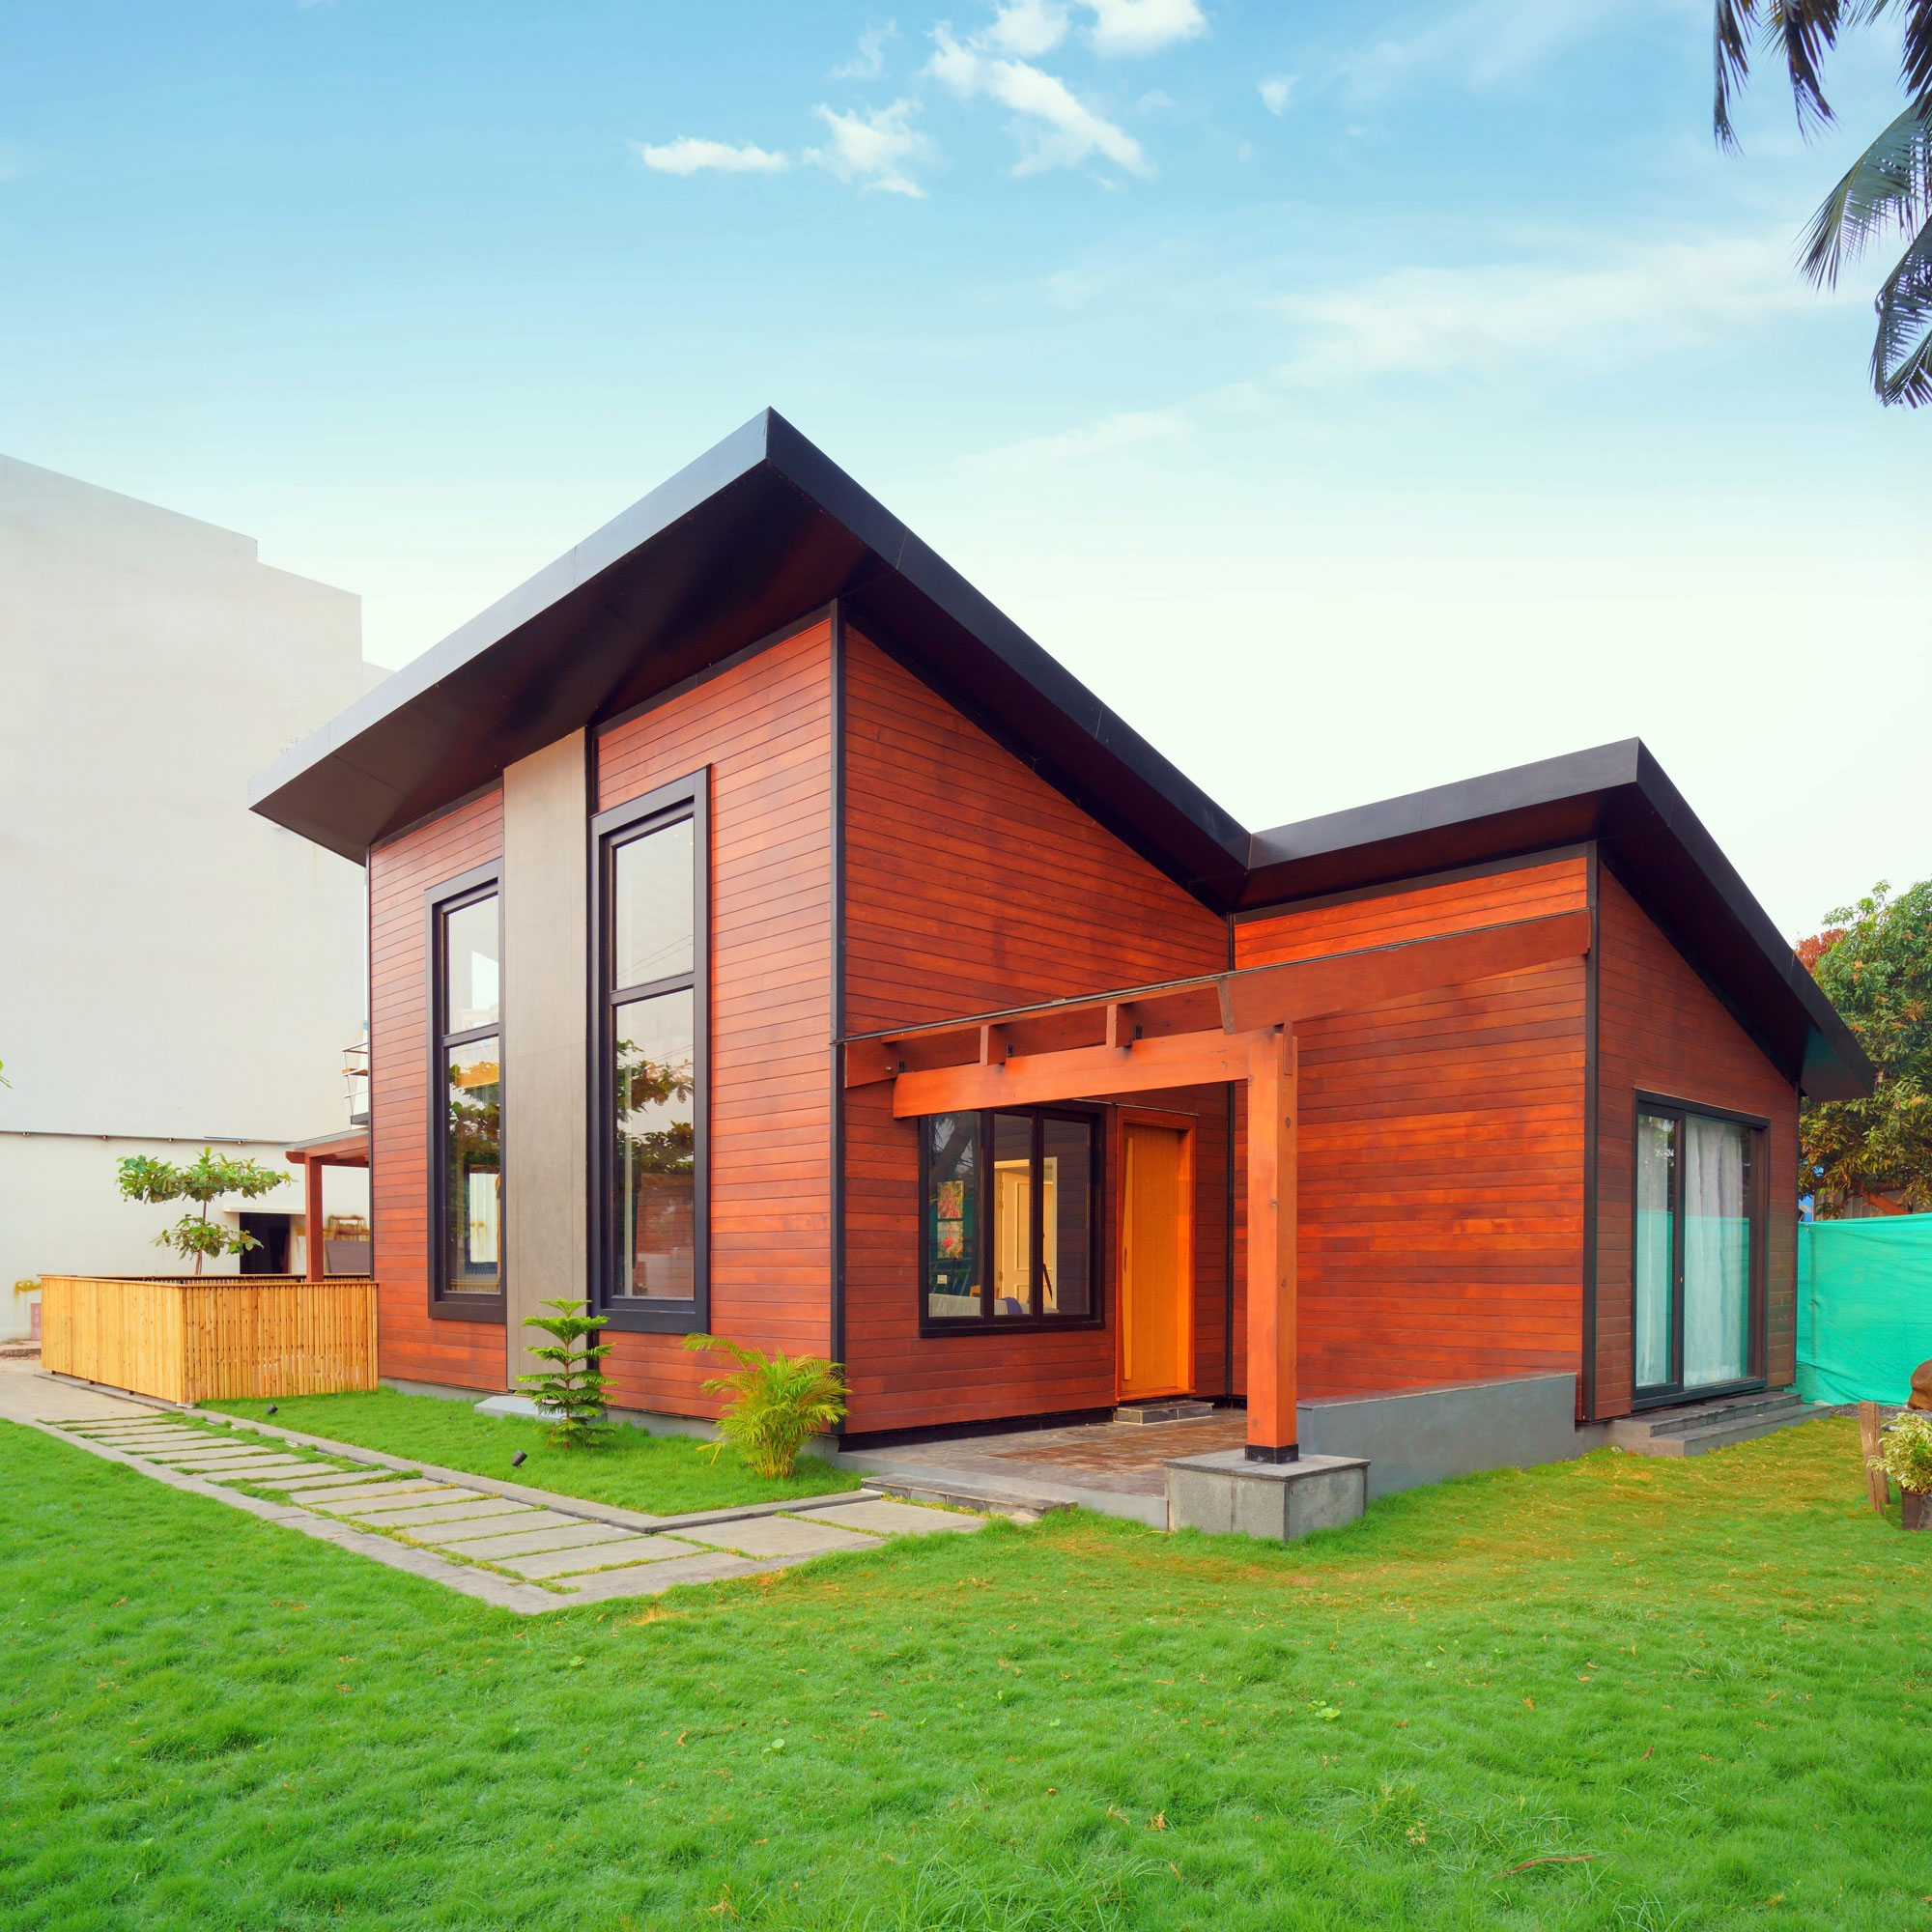 Wood Frame Construction single storey residential villa<abbr> Chennai<br>S-P-F used for framing purposes & western red cedar for cladding.</abbr>